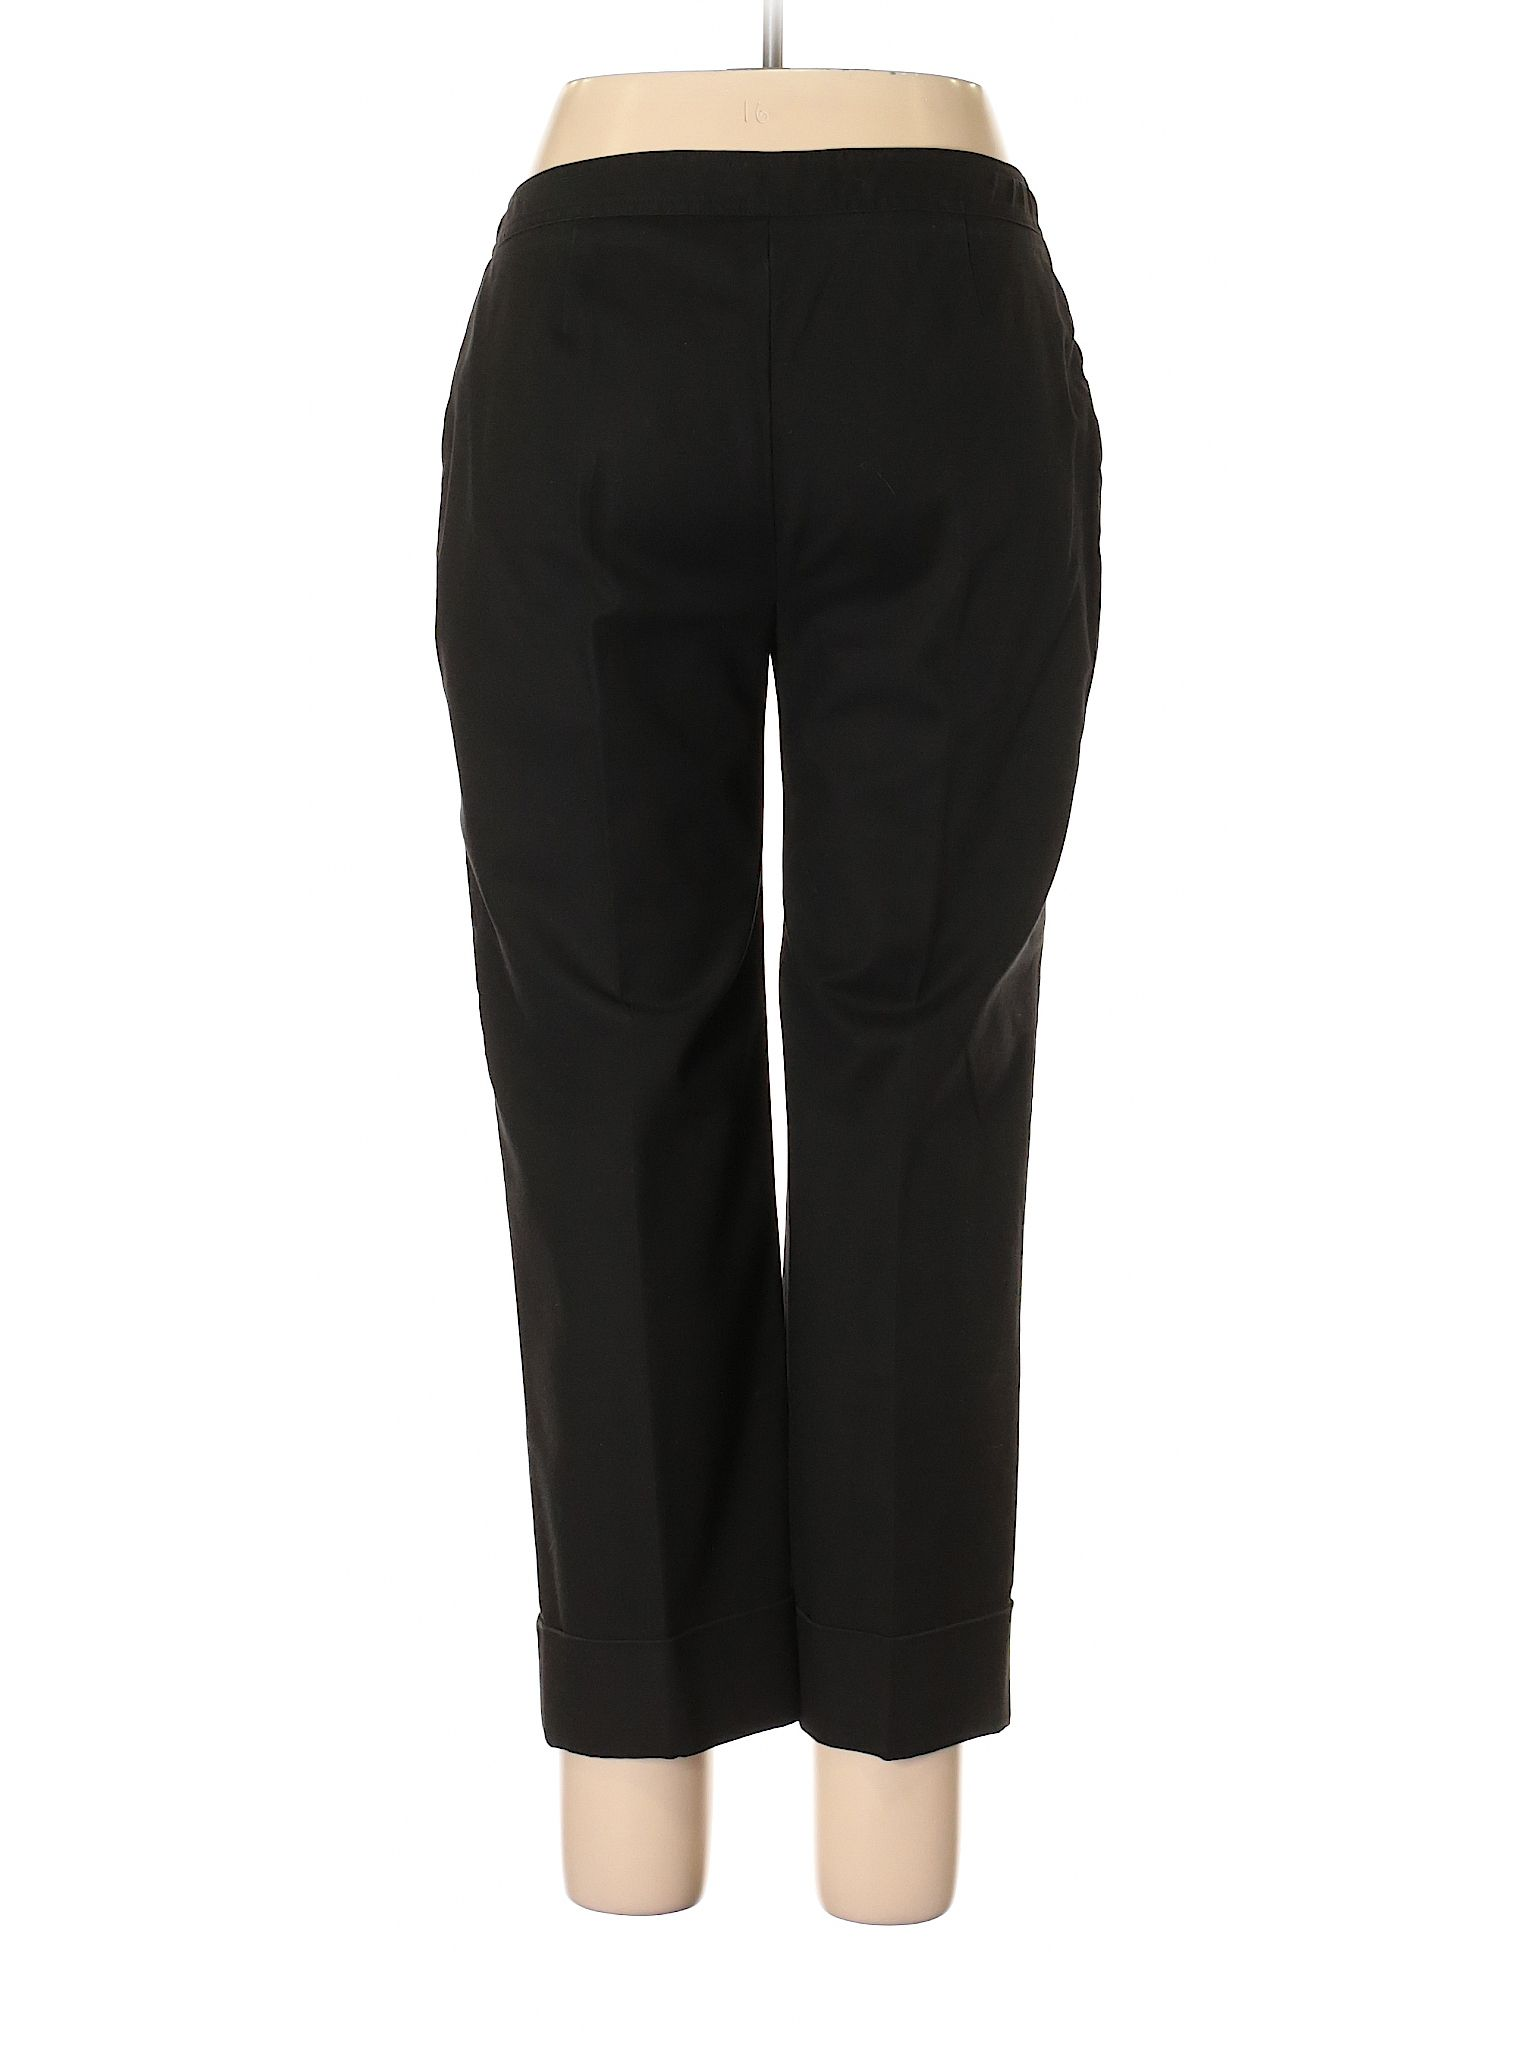 Ellen Tracy Dress Pants Size 12 00 Black Women S Bottoms 25 99